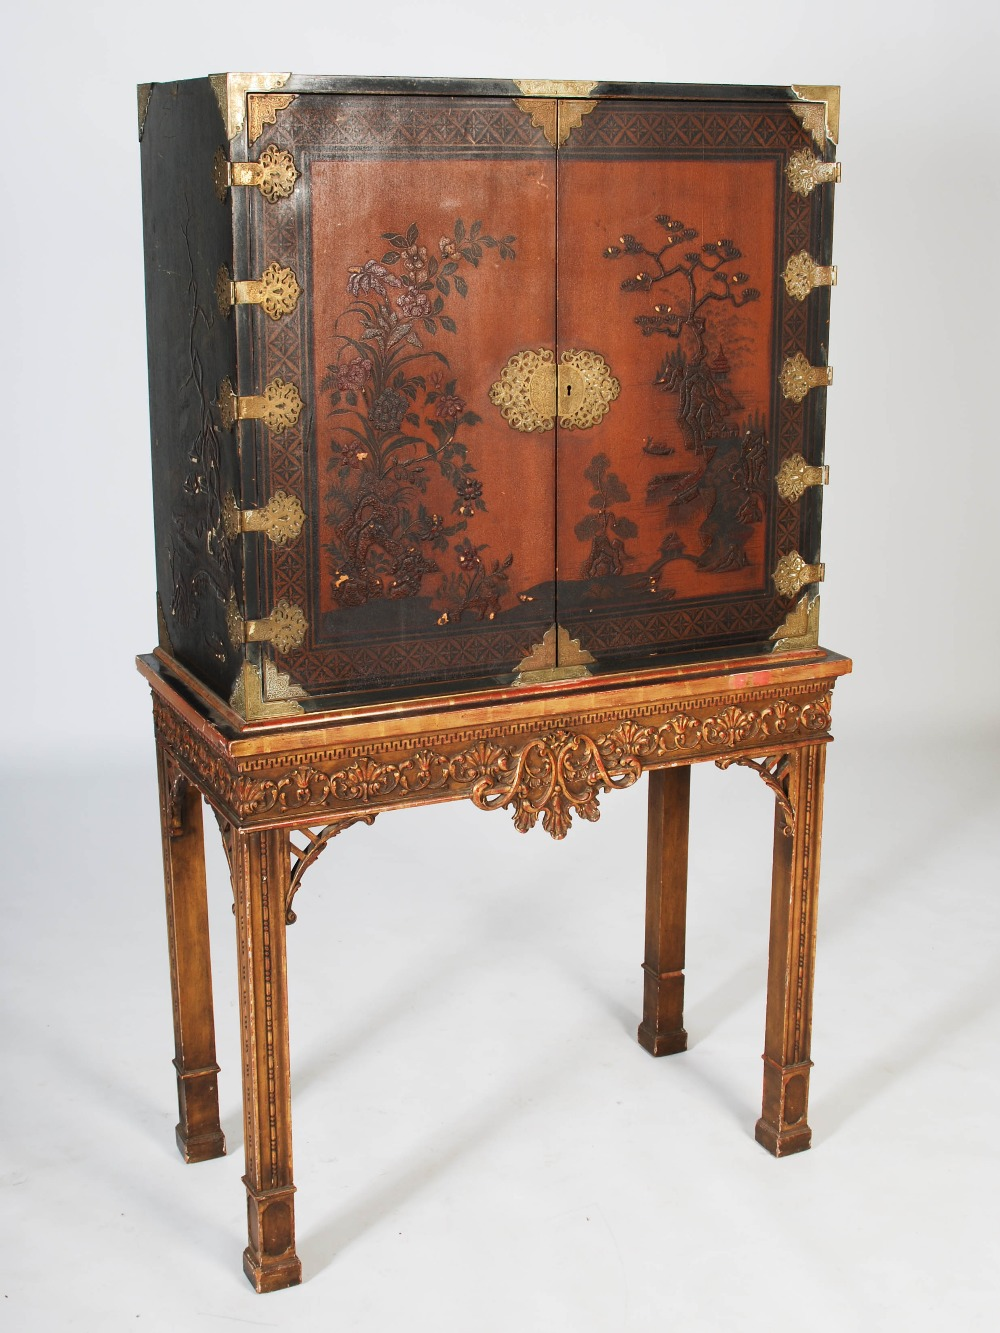 Lot 107 - An early 20th century chinoiserie decorated lacquered cabinet on stand, the cabinet with a pair of